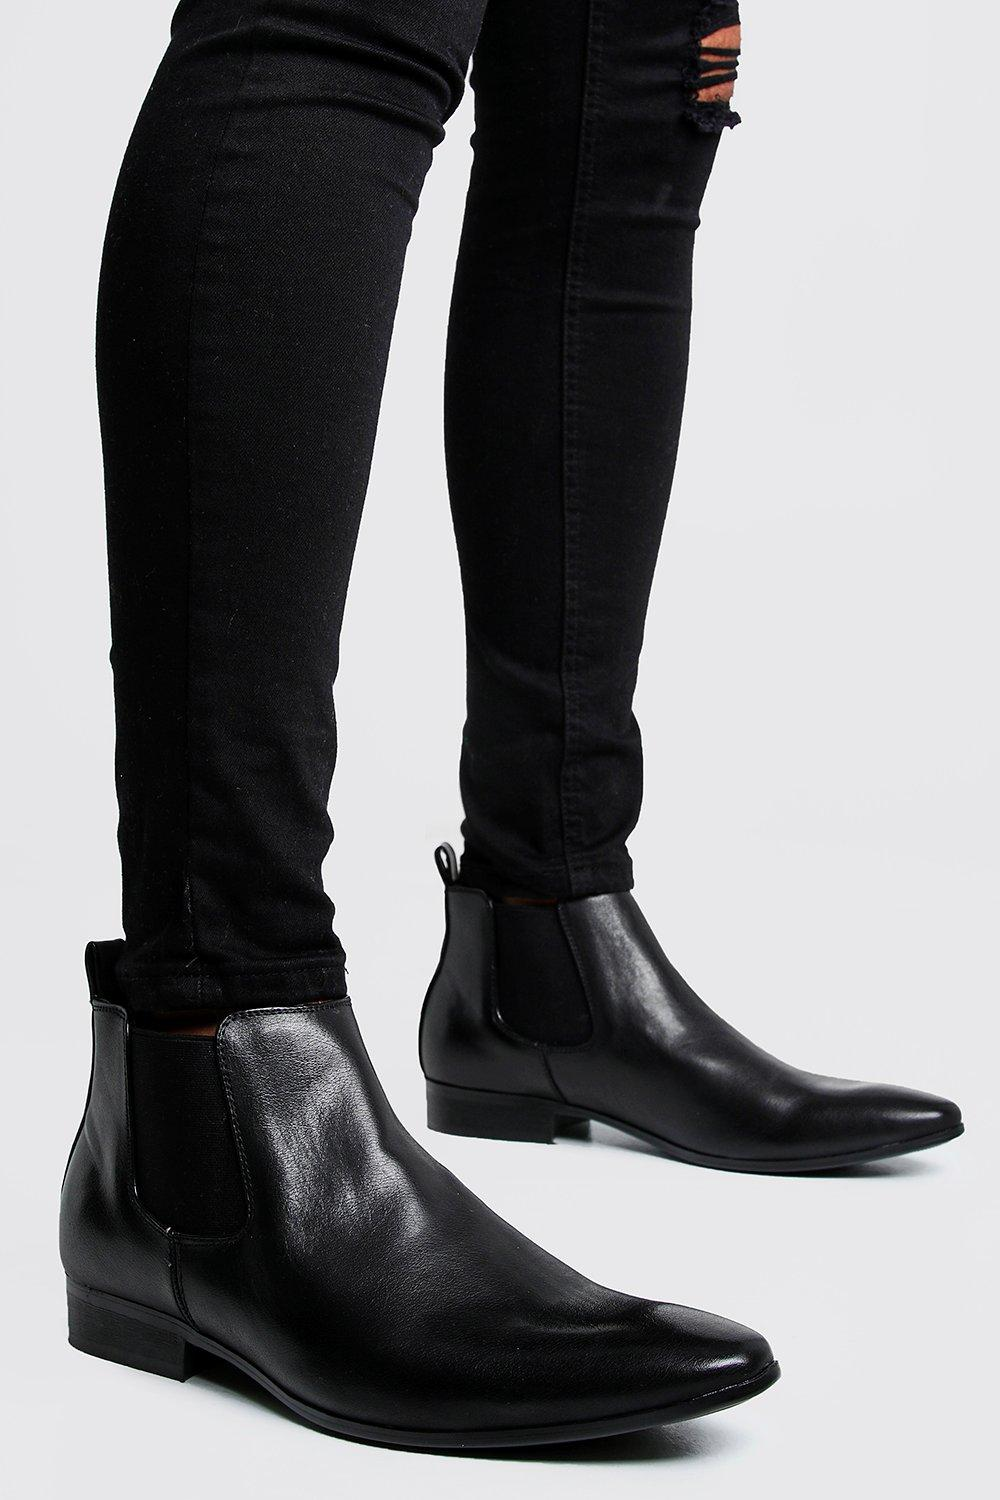 mens leather look chelsea boots - black